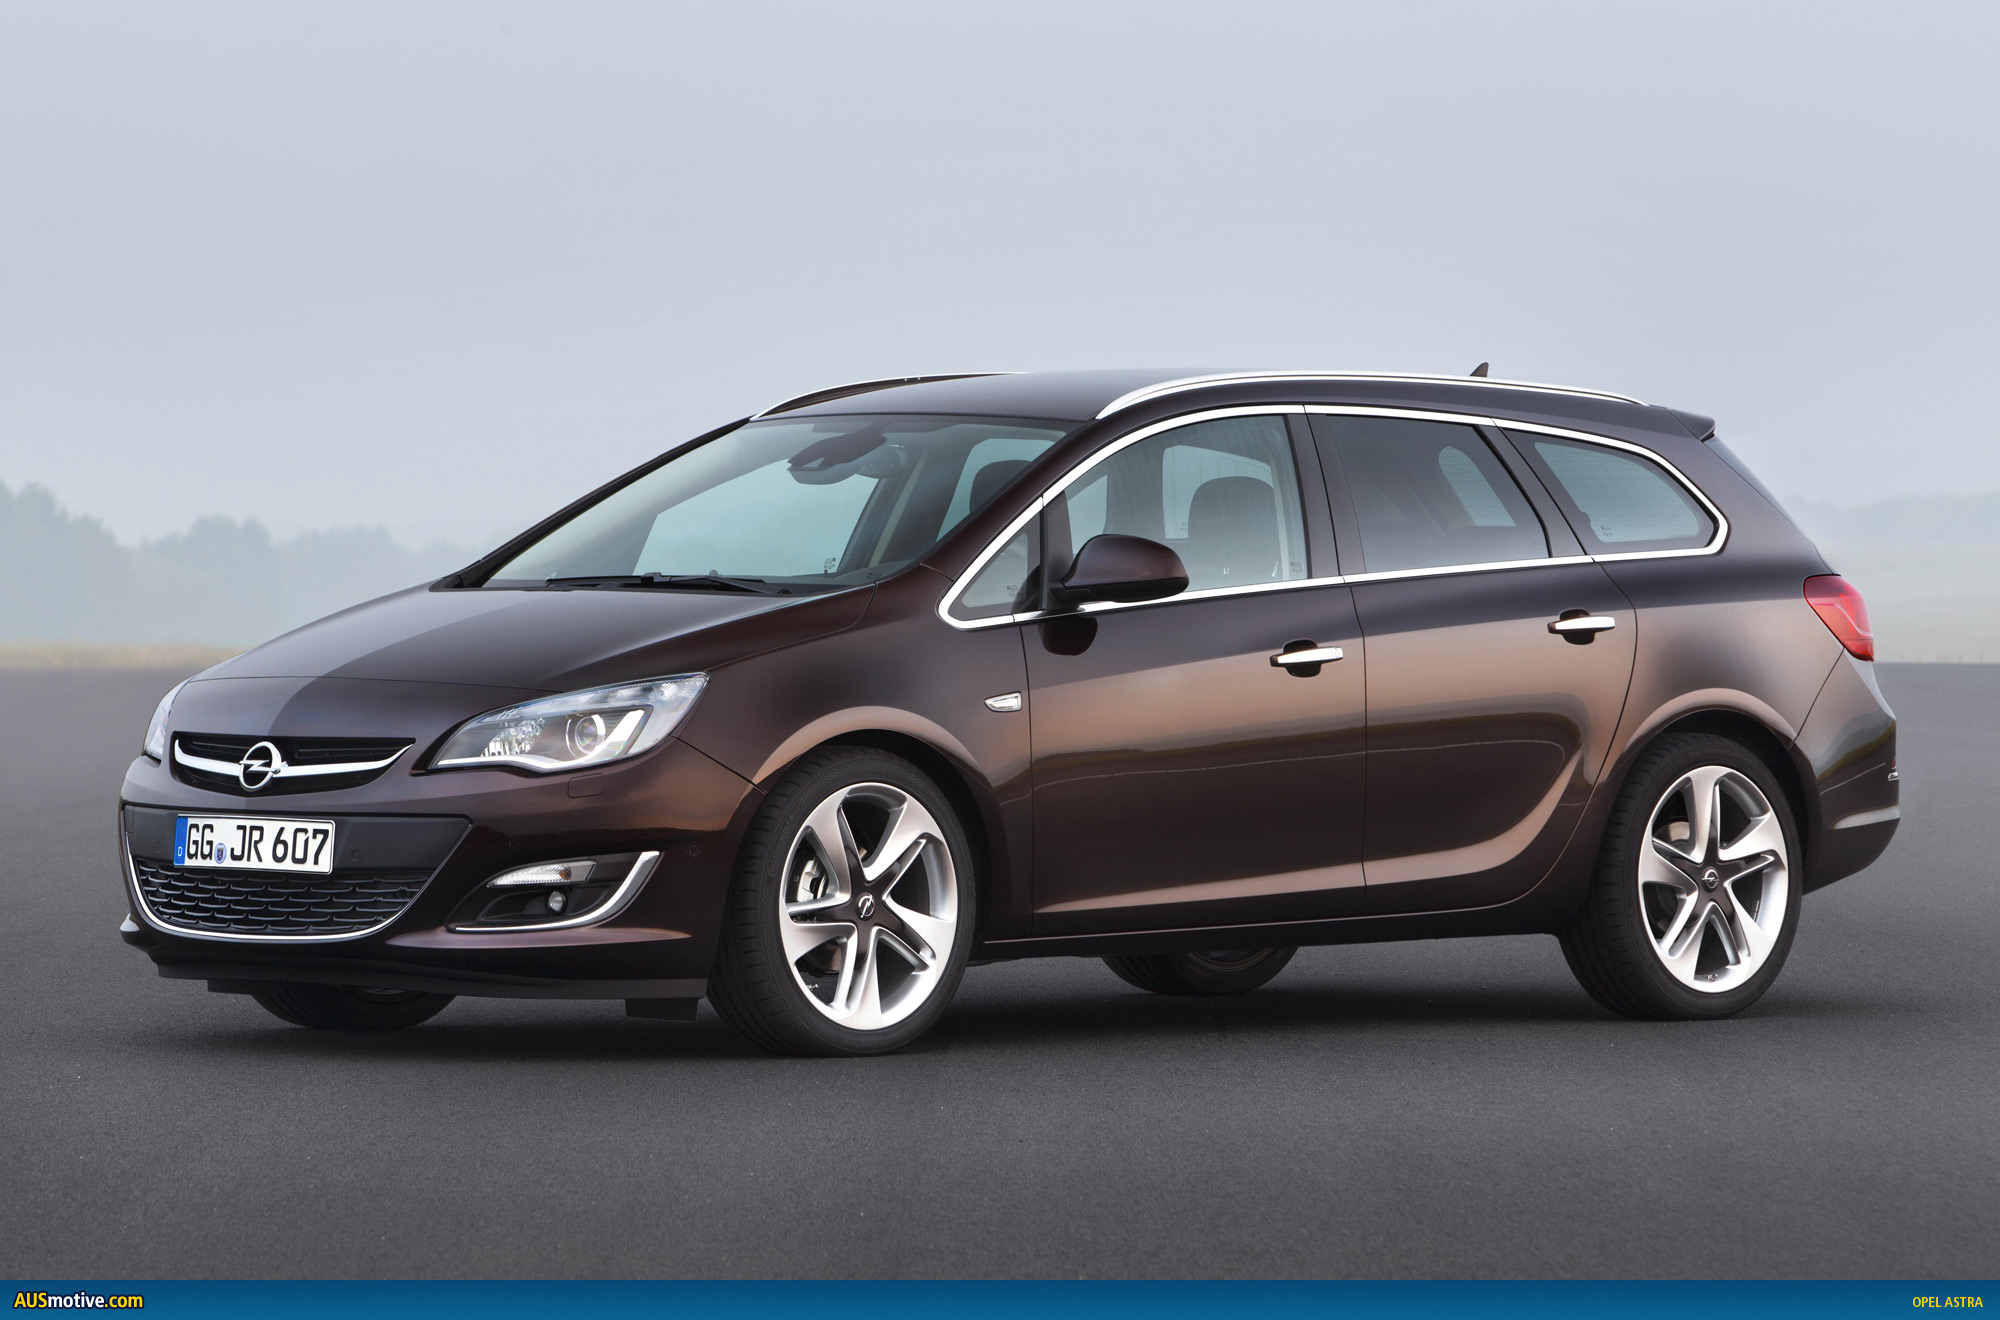 2010 Opel Astra J Sports Tourer Pictures Information And Specs Wiring Diagram 5